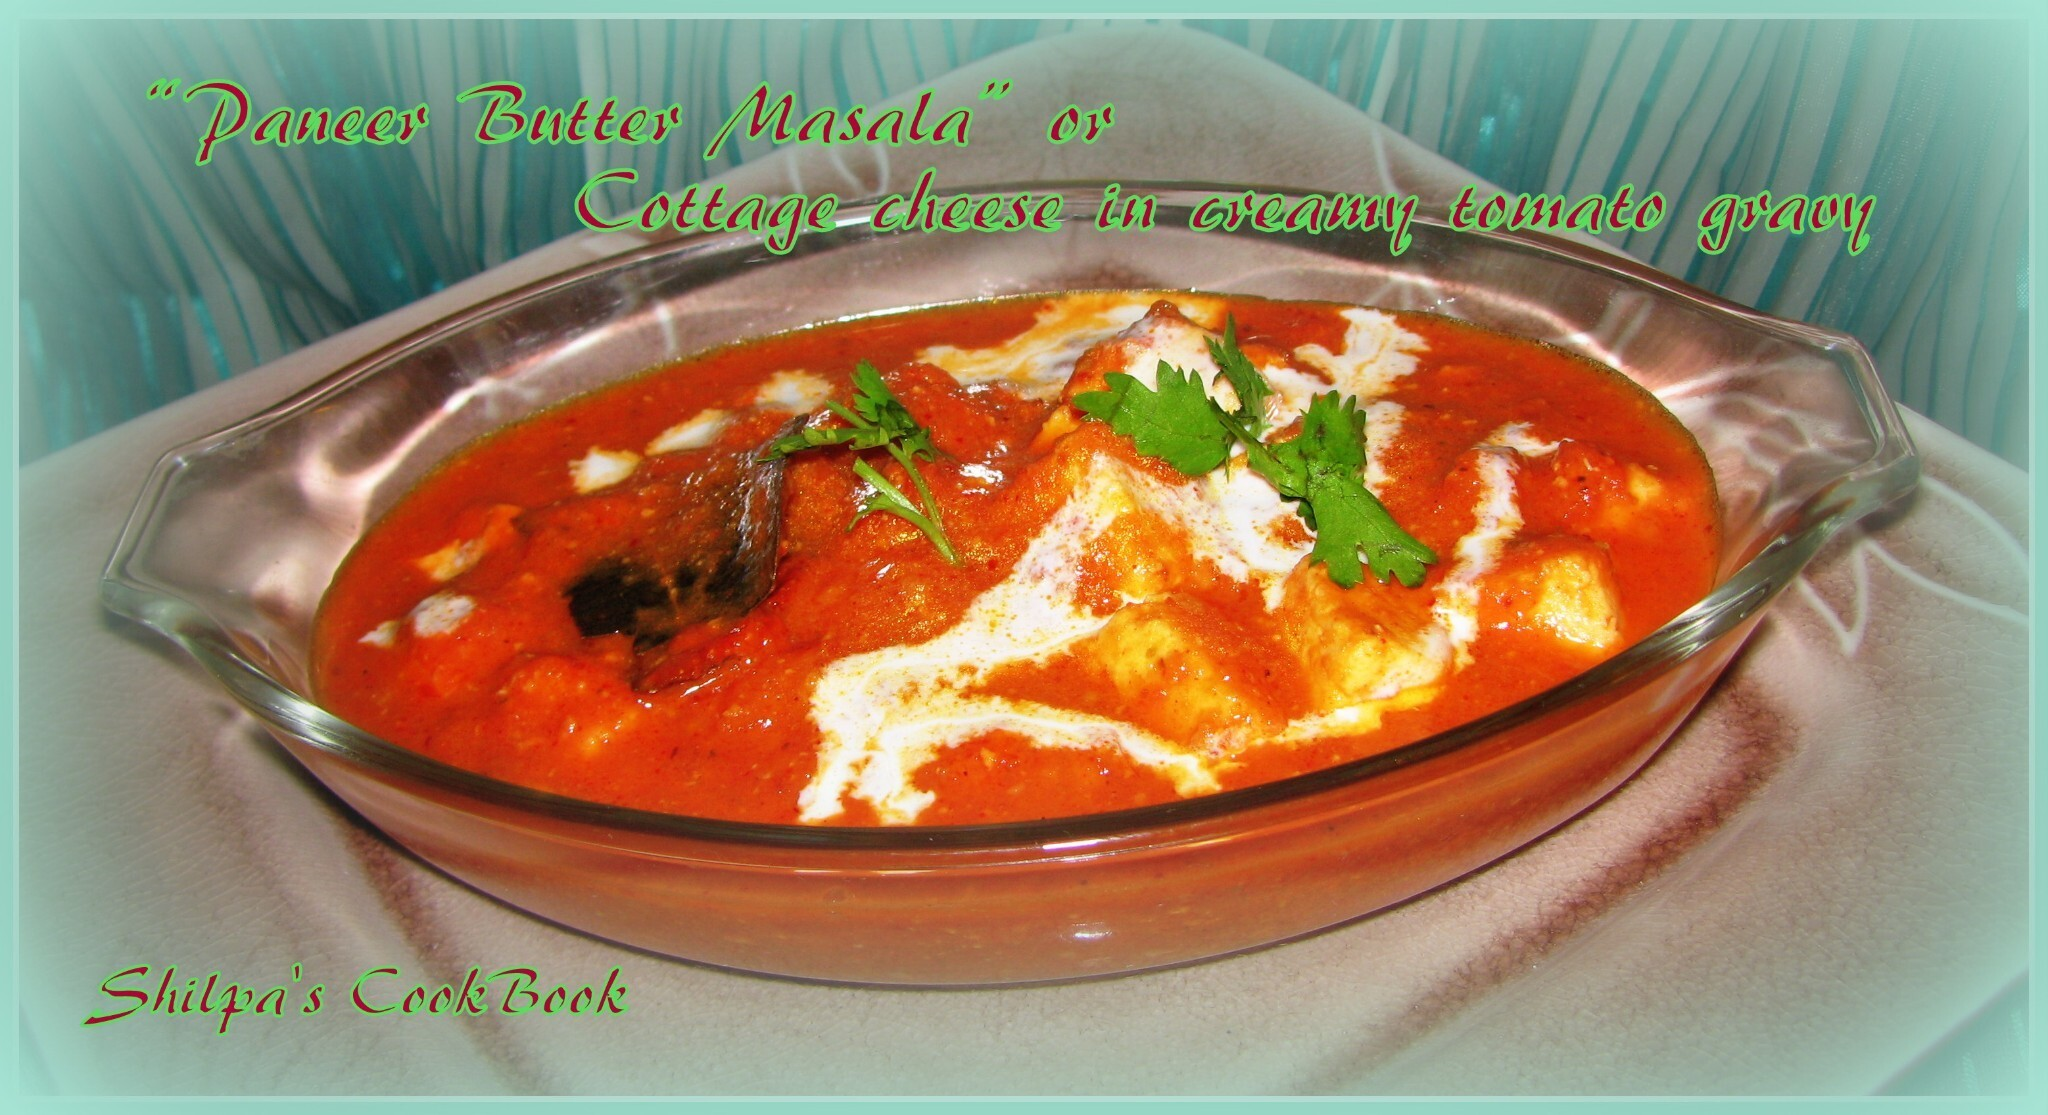 """Paneer Butter Masala"" or  Cottage Cheese in Creamy  Tomato Gravy"